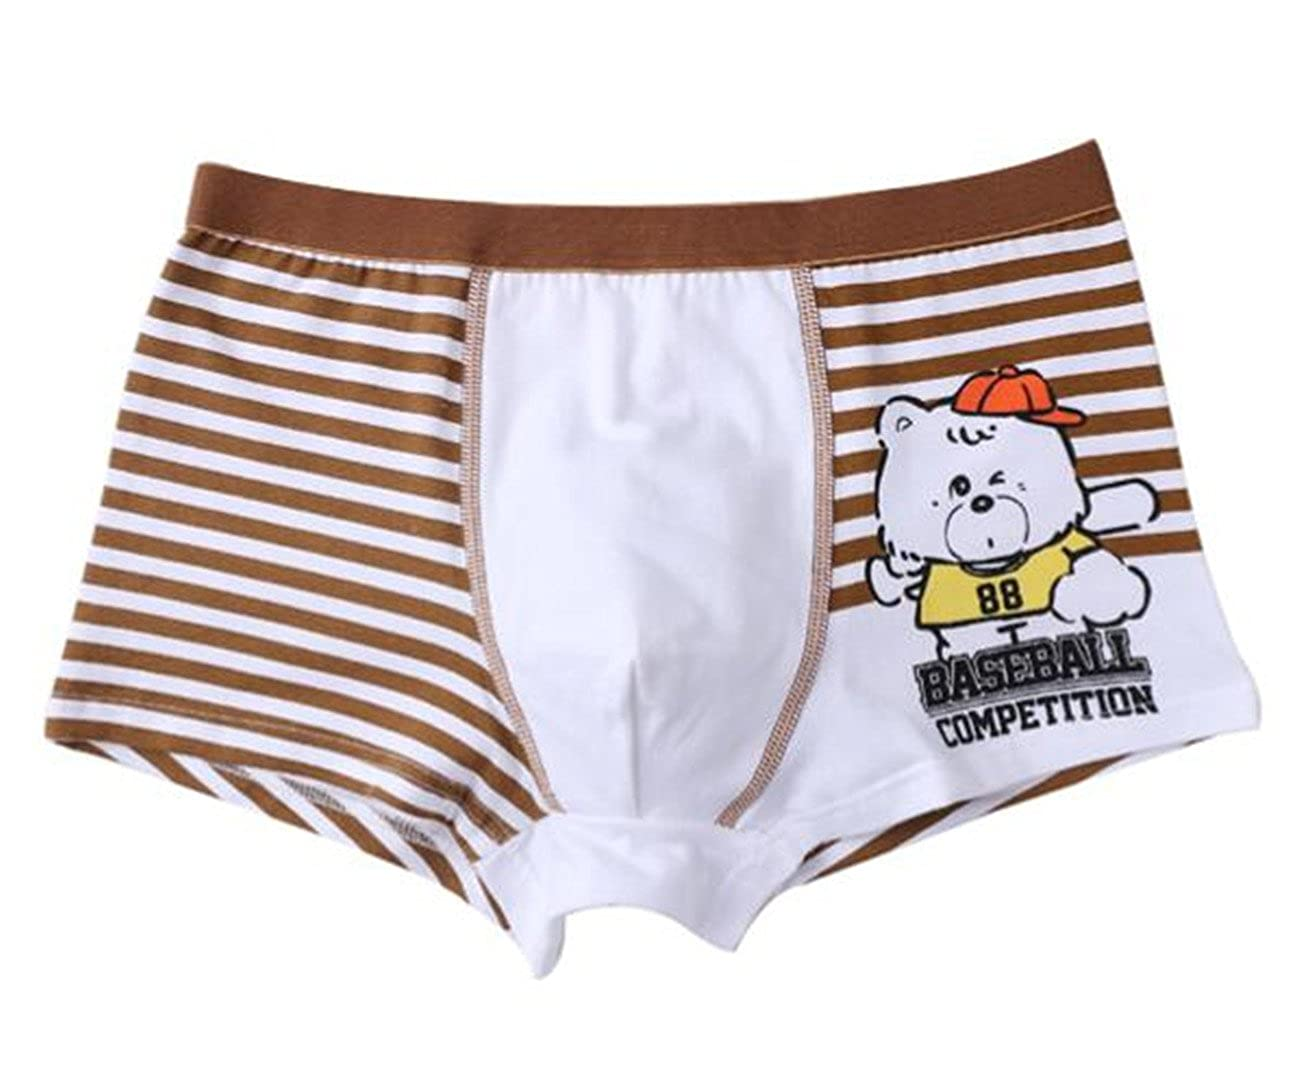 Boys Boxer Brief Sports Underwear Cotton Panties Shorts 4-Pack